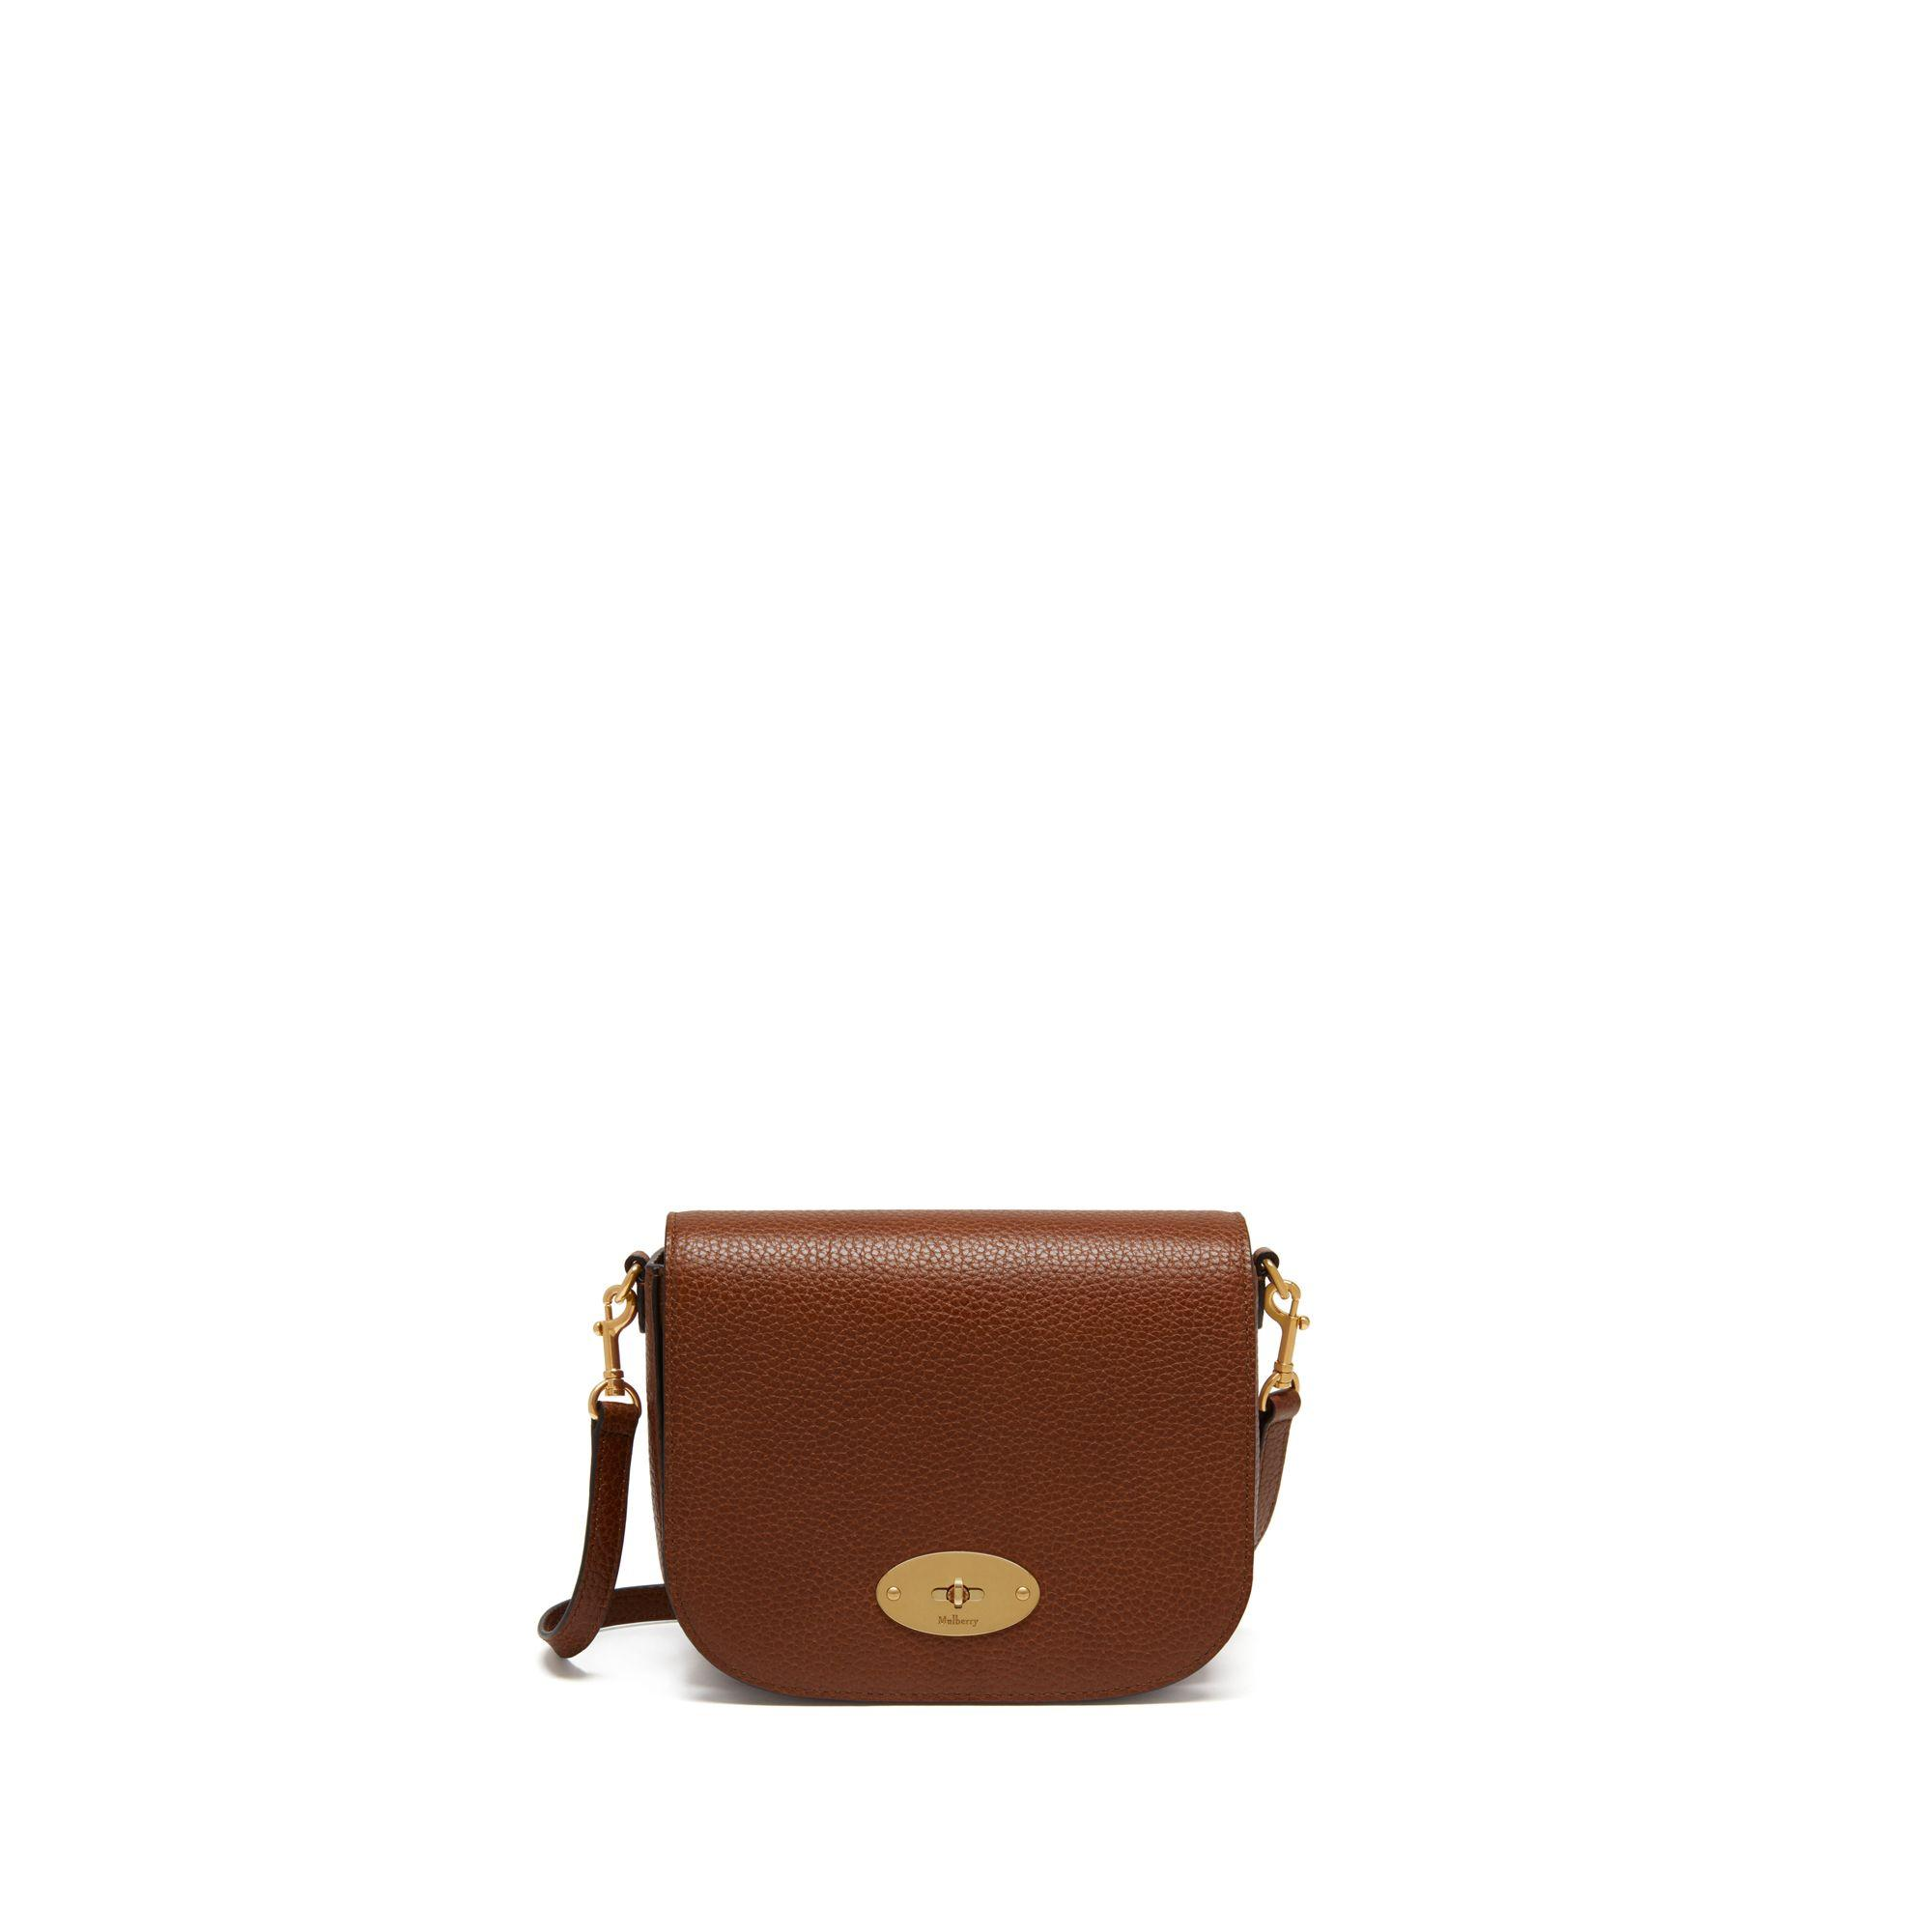 Browse stores. Mulberry - Multicolor Small Darley Satchel In Oak Natural  Grain Leather - Lyst. View fullscreen 5478f41a473e3